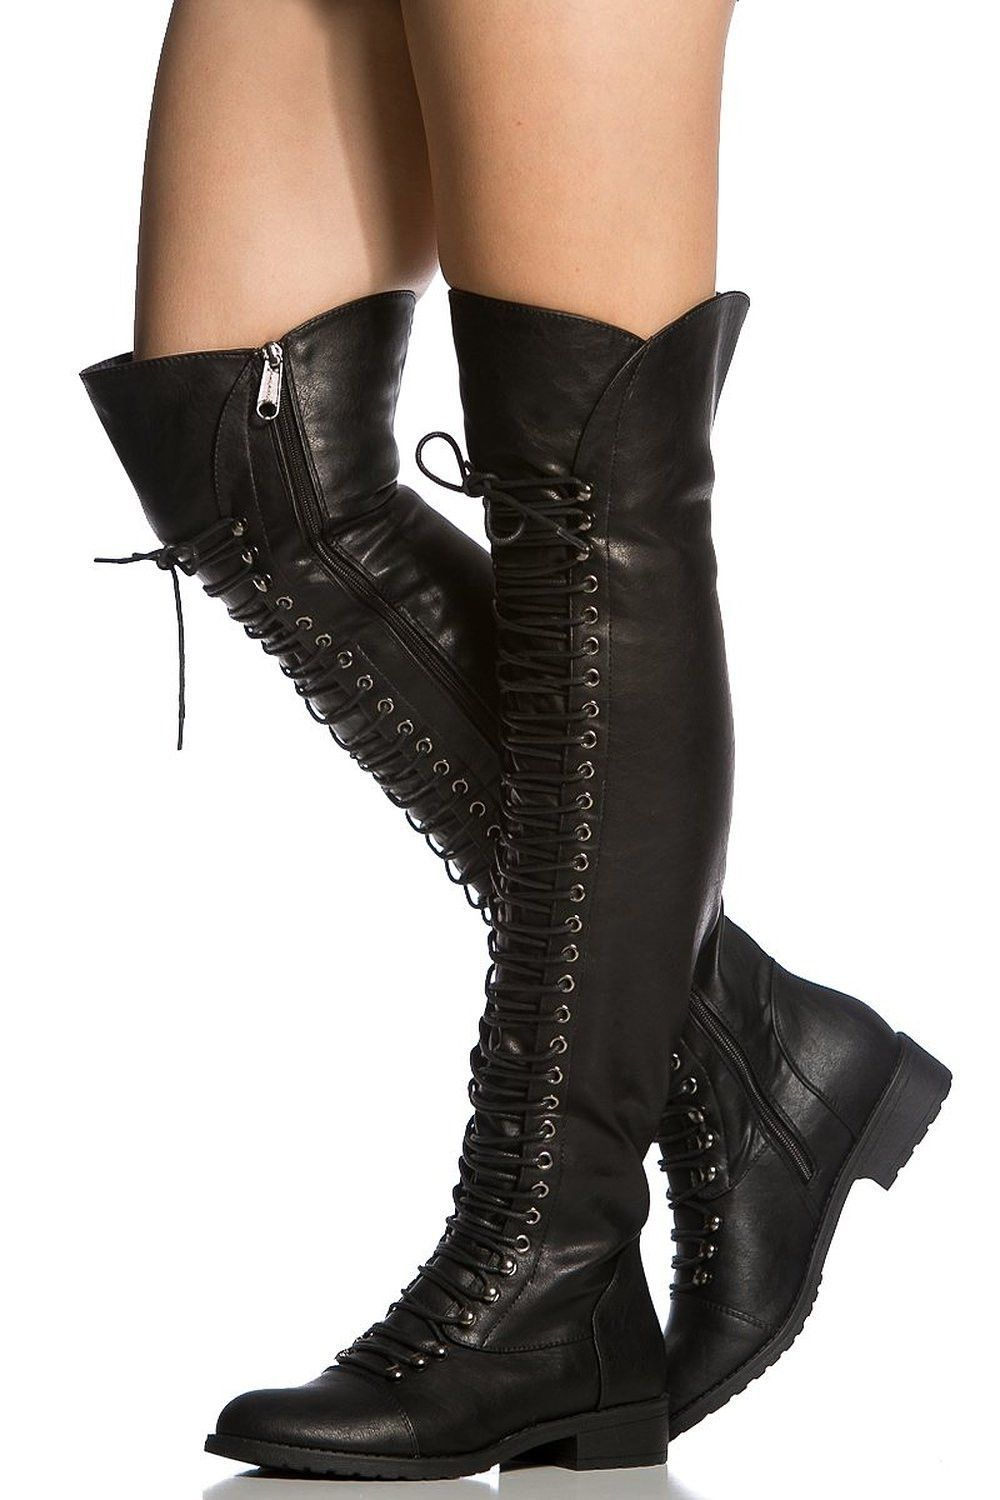 39aa2e6fa3 We love taking thigh high to another level. This boot features adjustable  laces, inner zipper for closing, soft padding inside, and cushioned insoles.